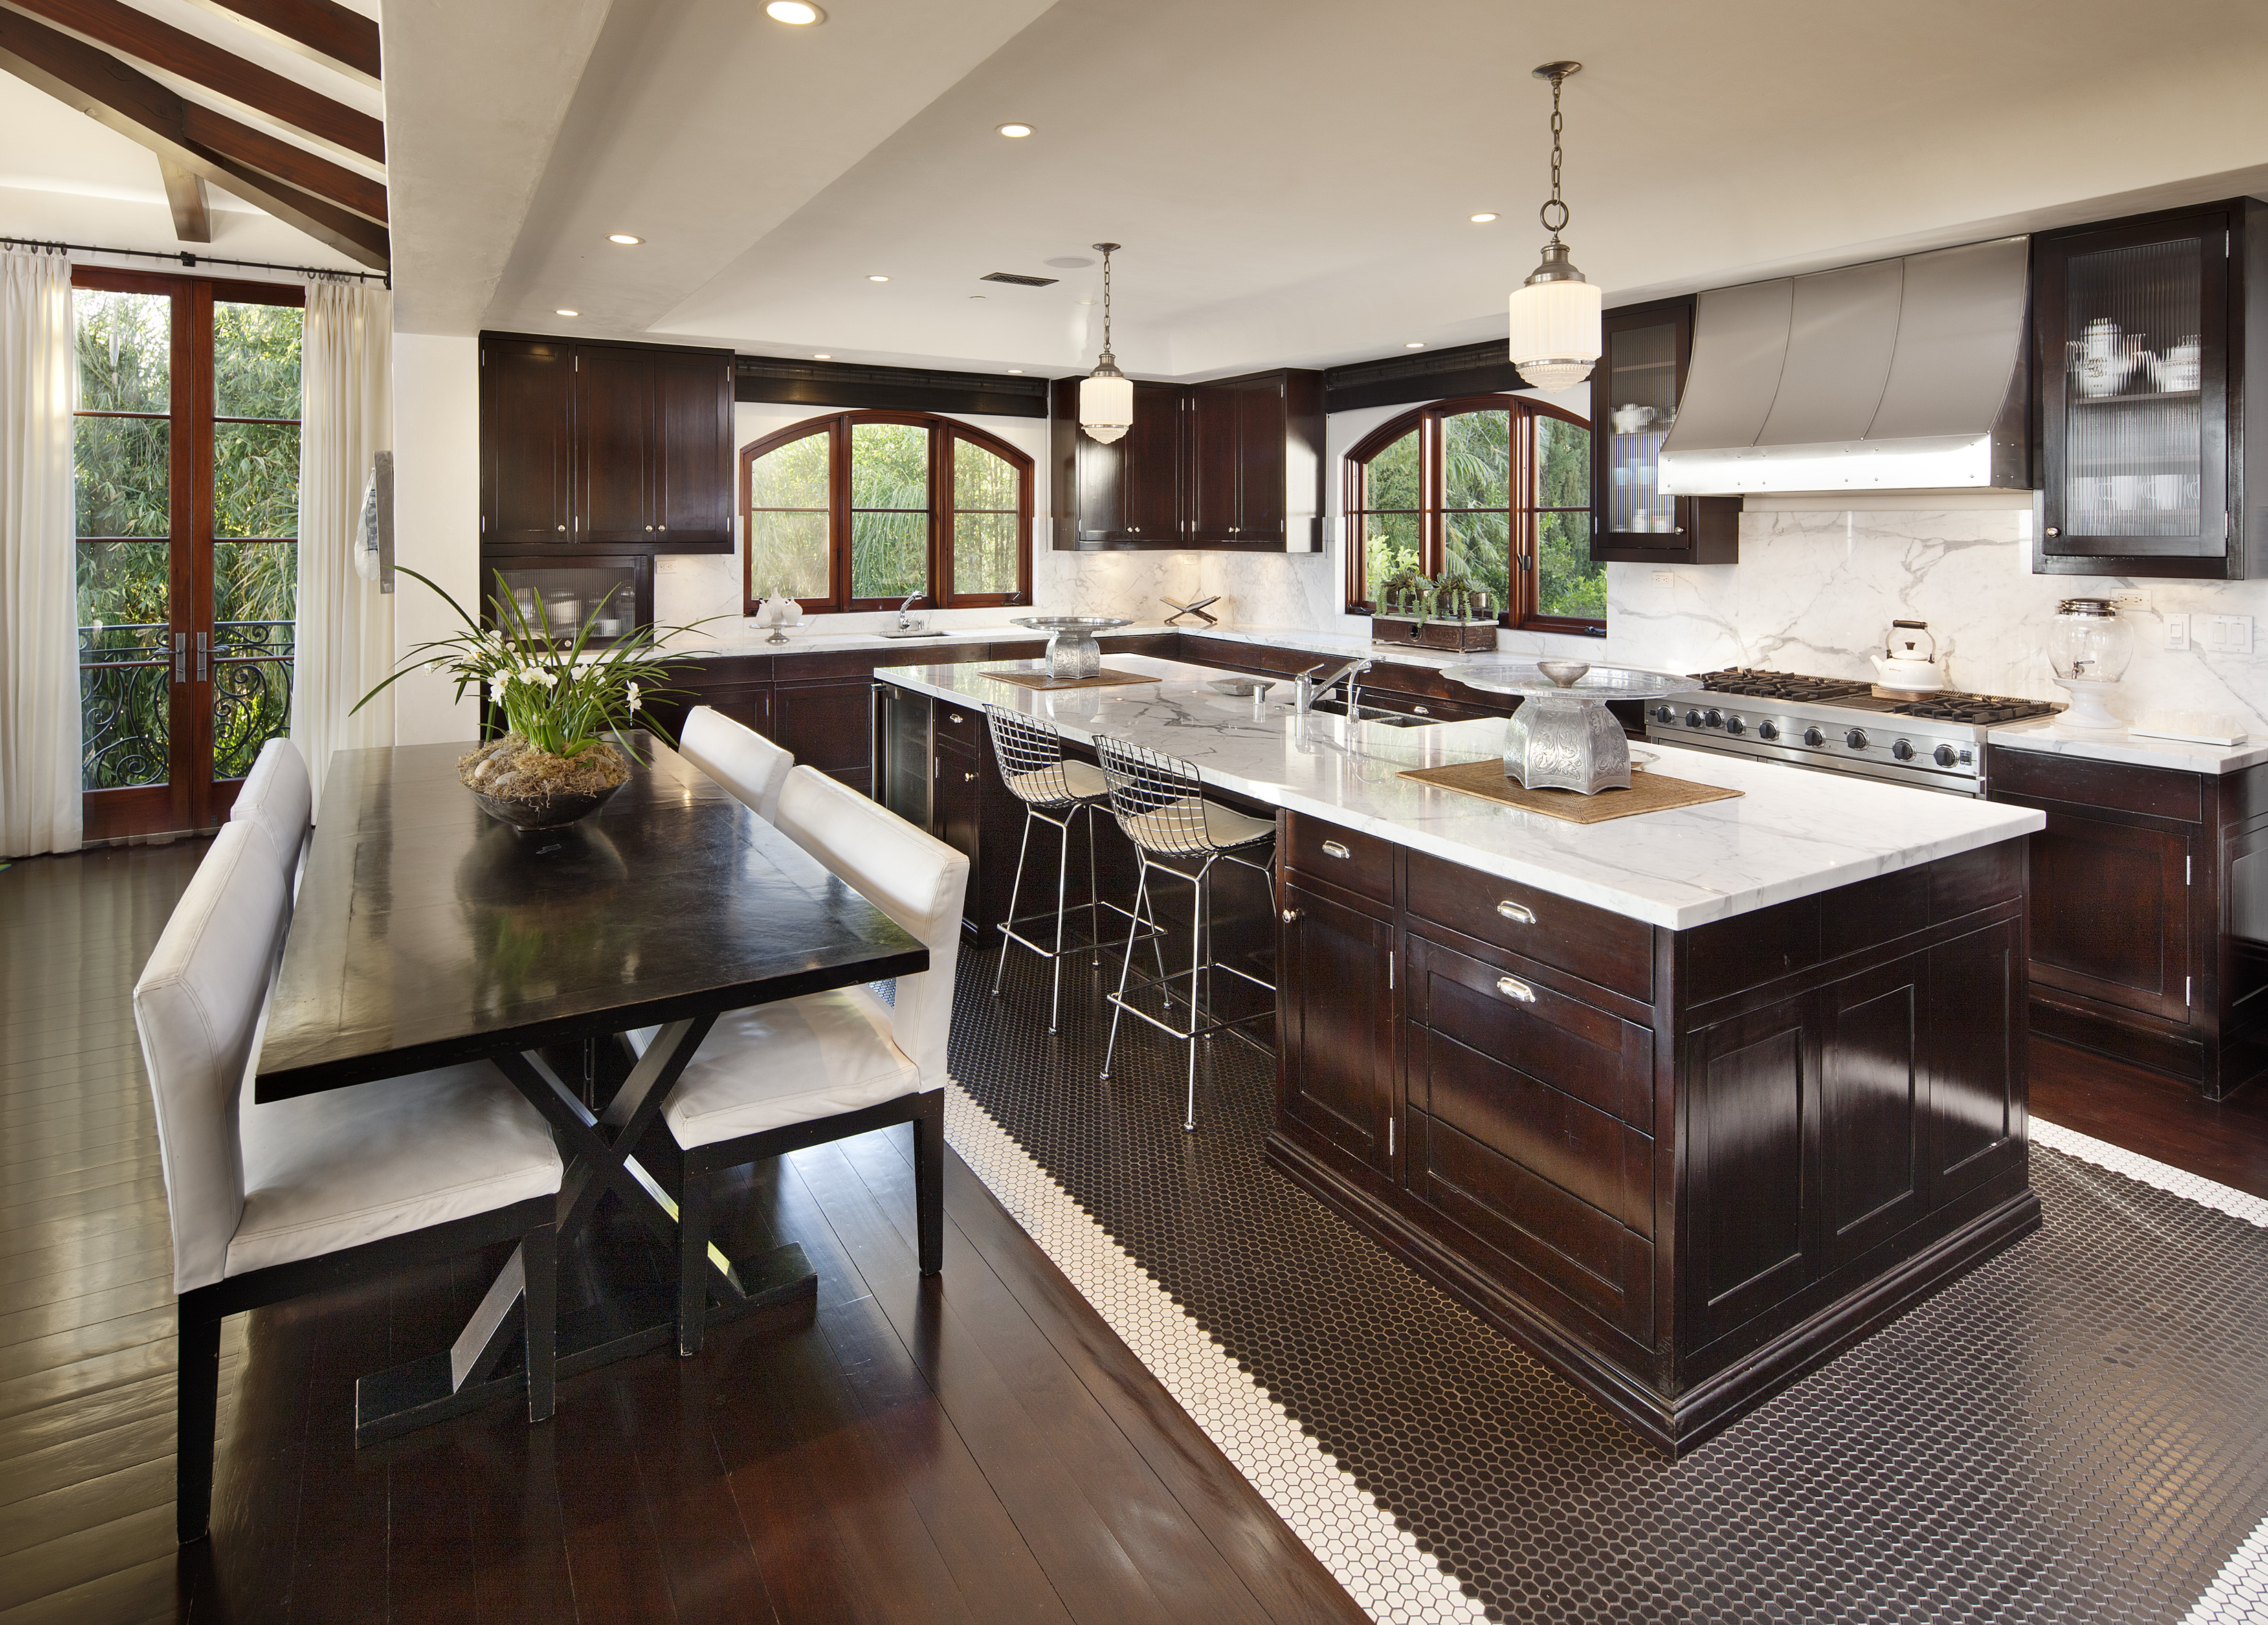 beautiful kitchen cabinets pan kitchens eat your heart out part two